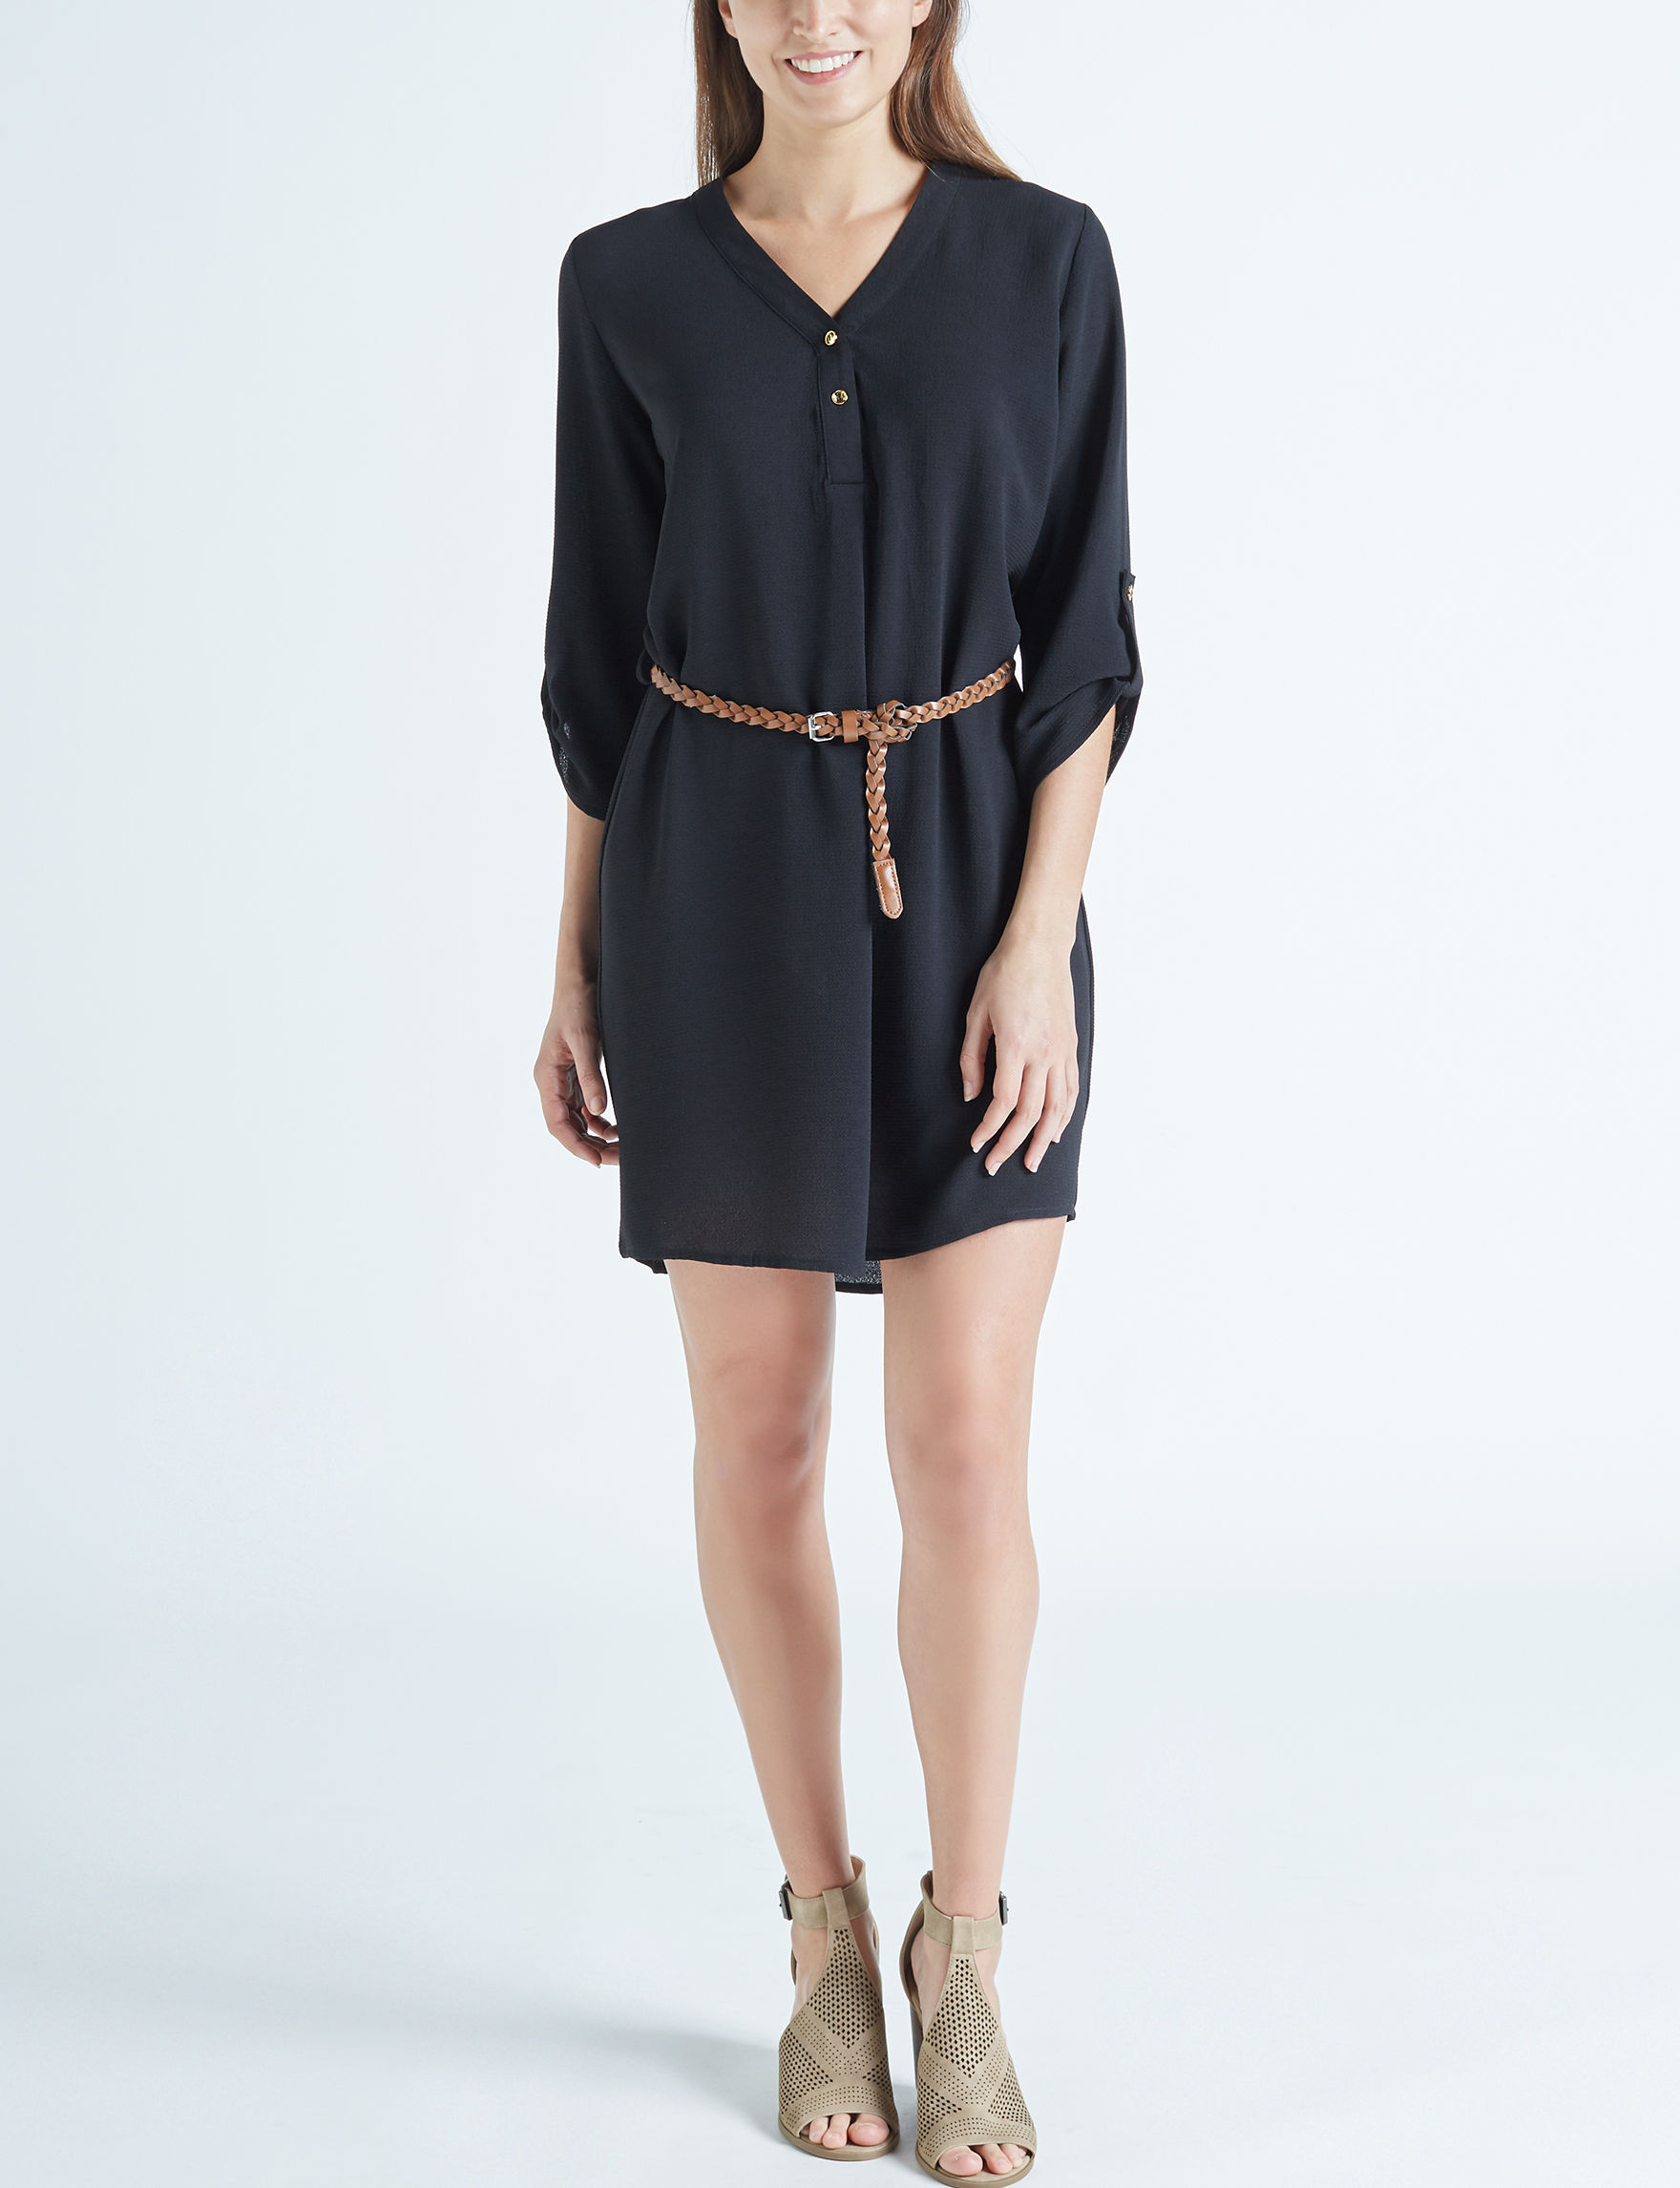 Wishful Park Black Everyday & Casual Shirt Dresses